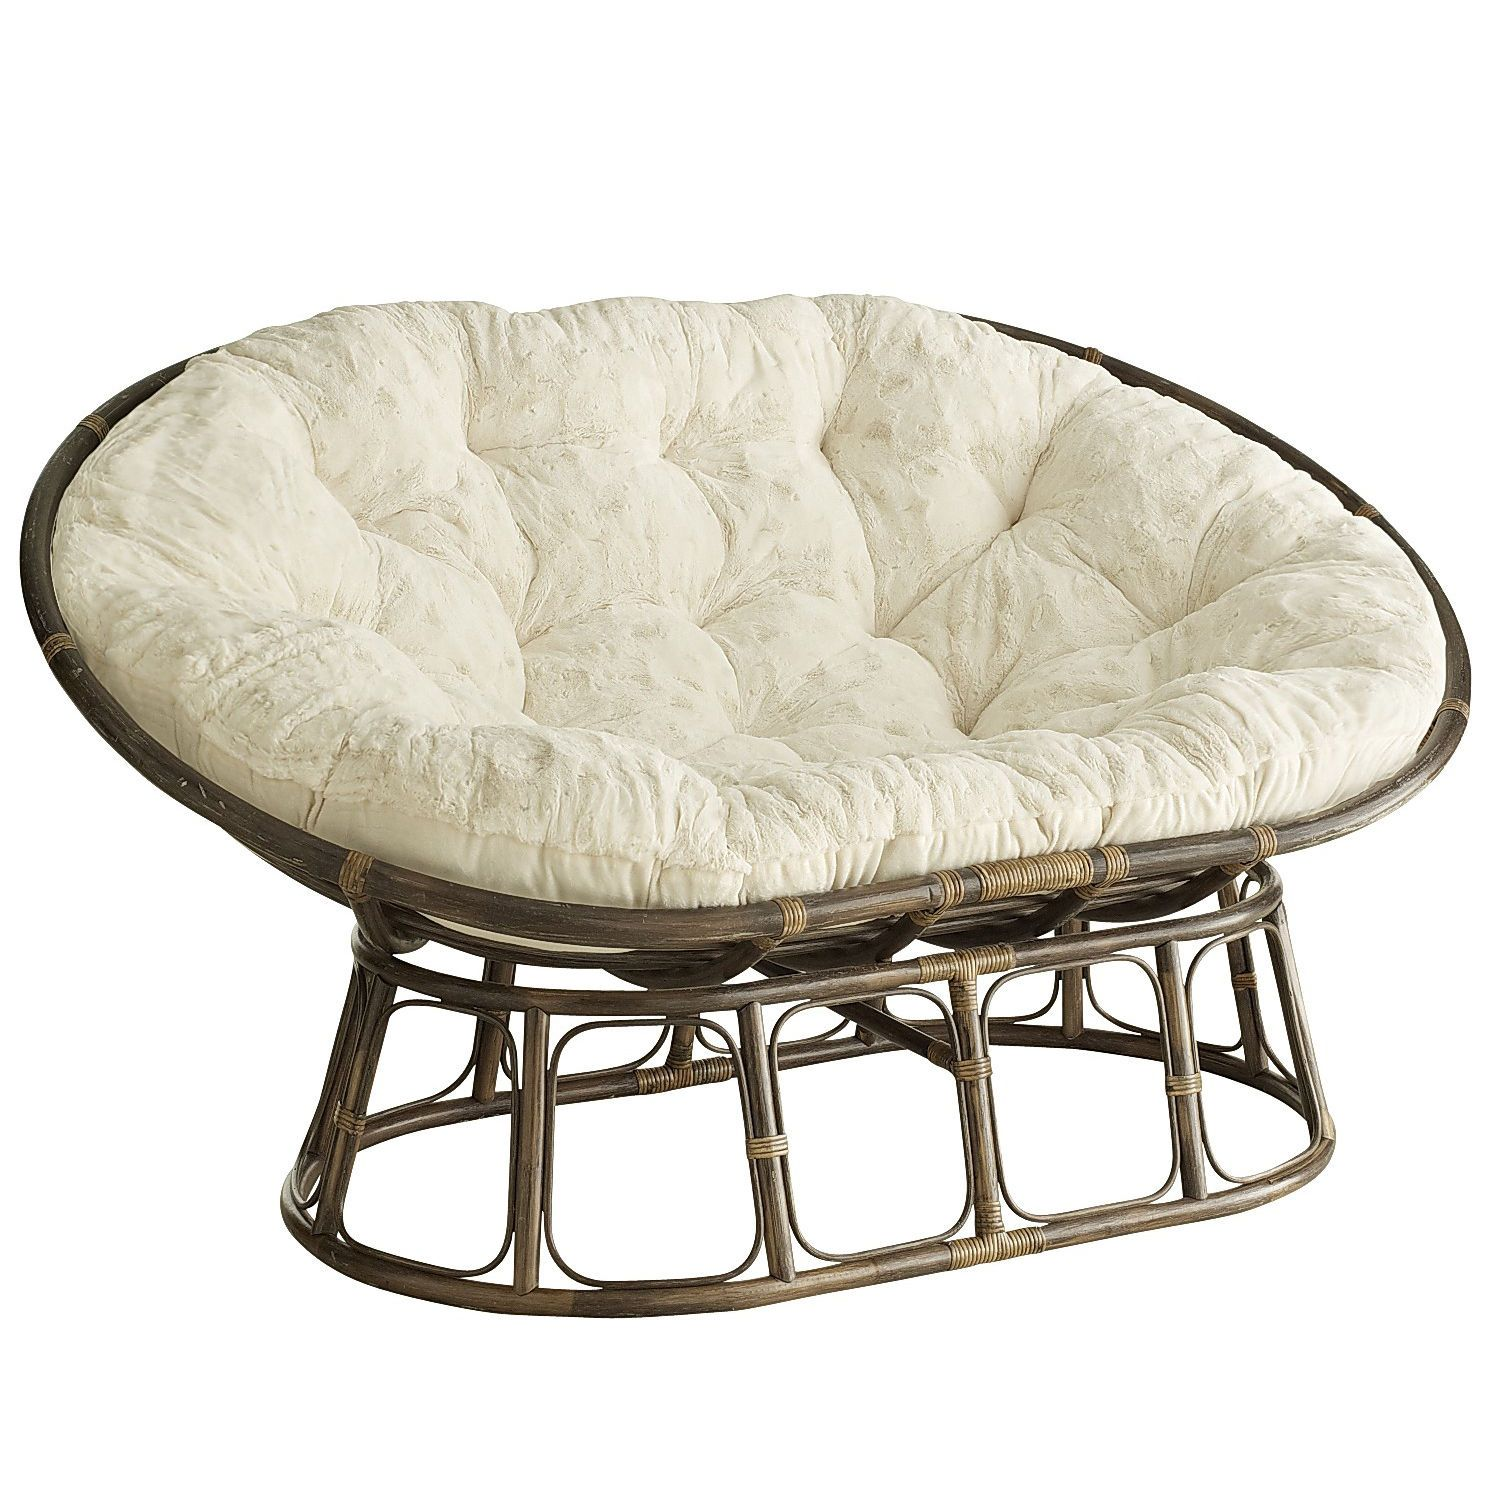 Rattan Sofa Papasan Pier 1 Double Papasan Chair I Want One Of These So Bad It